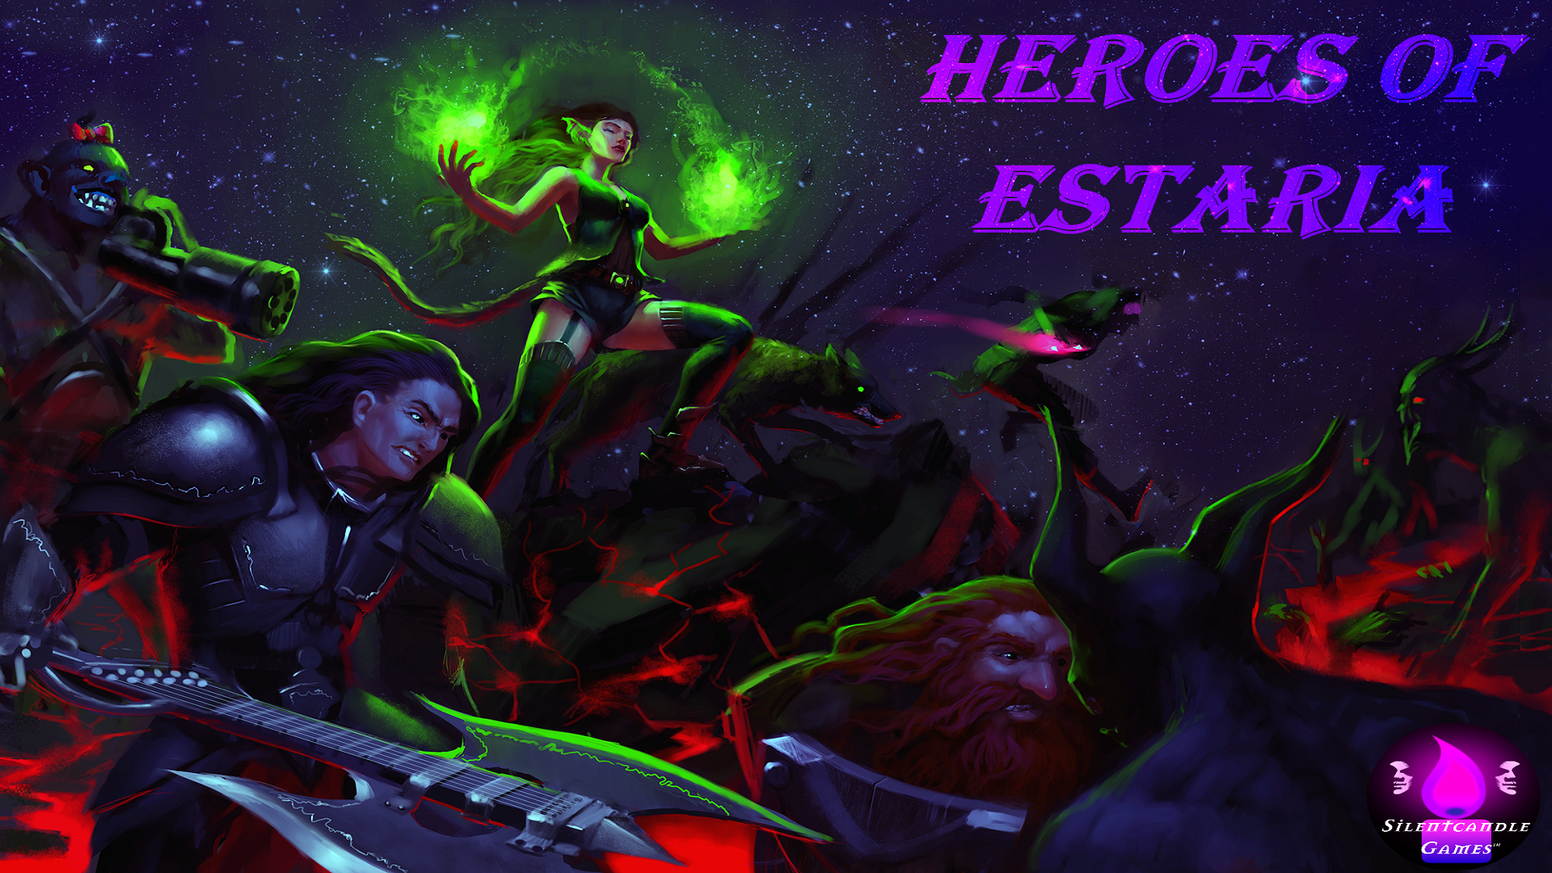 Heroes of Estaria: A Fantasy Tabletop RPG by Silentcandle Games